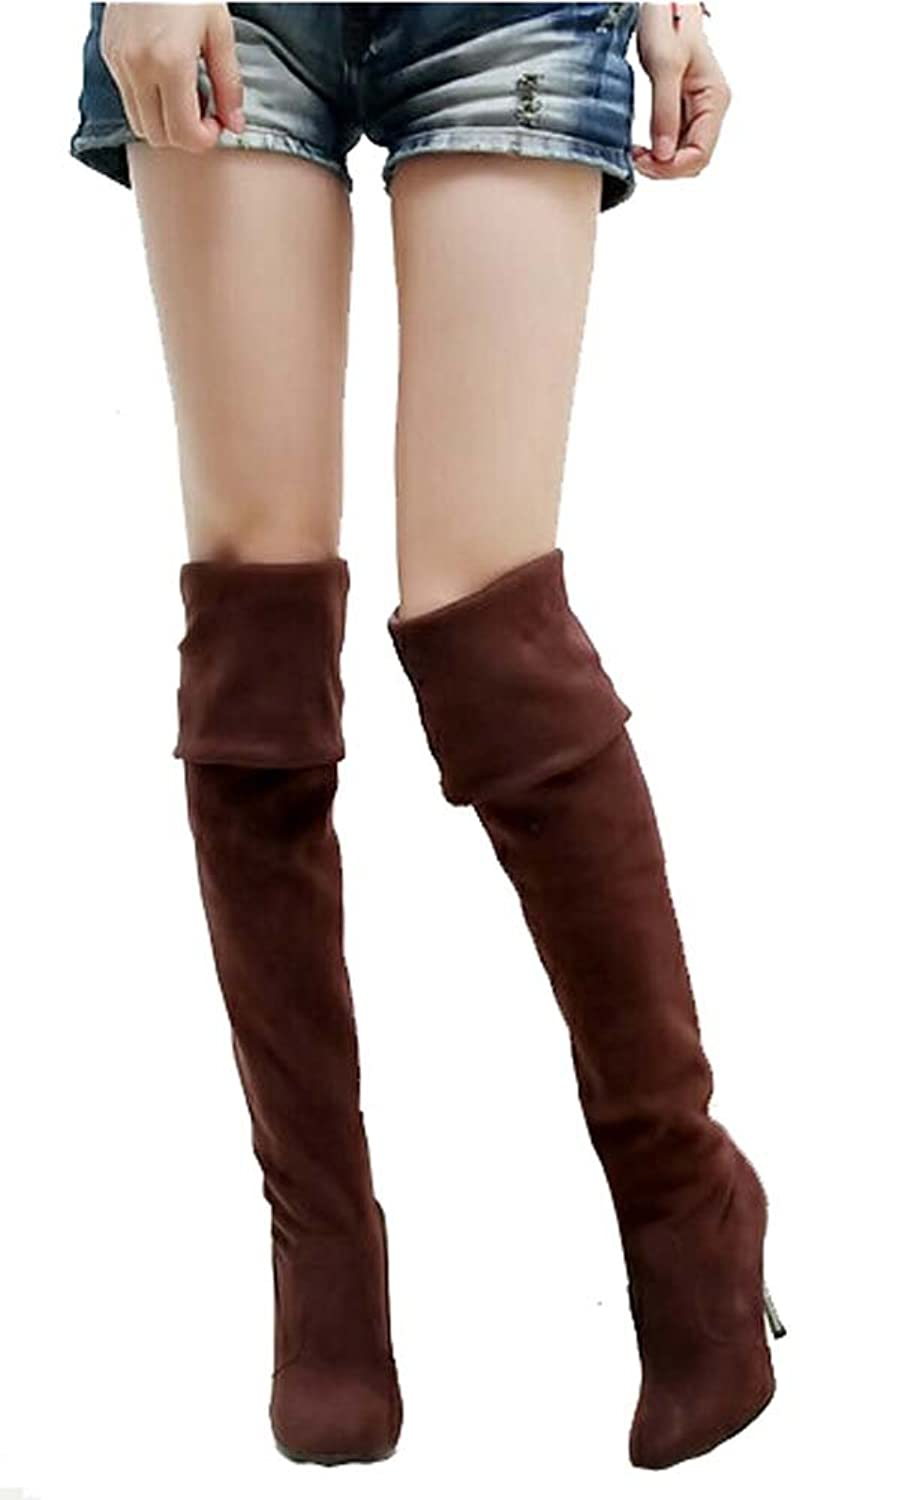 2014 Women High Heels Boots Sexy Fashion Autumn Winter Ladies Pointed Toe Long Over the Knee Boots